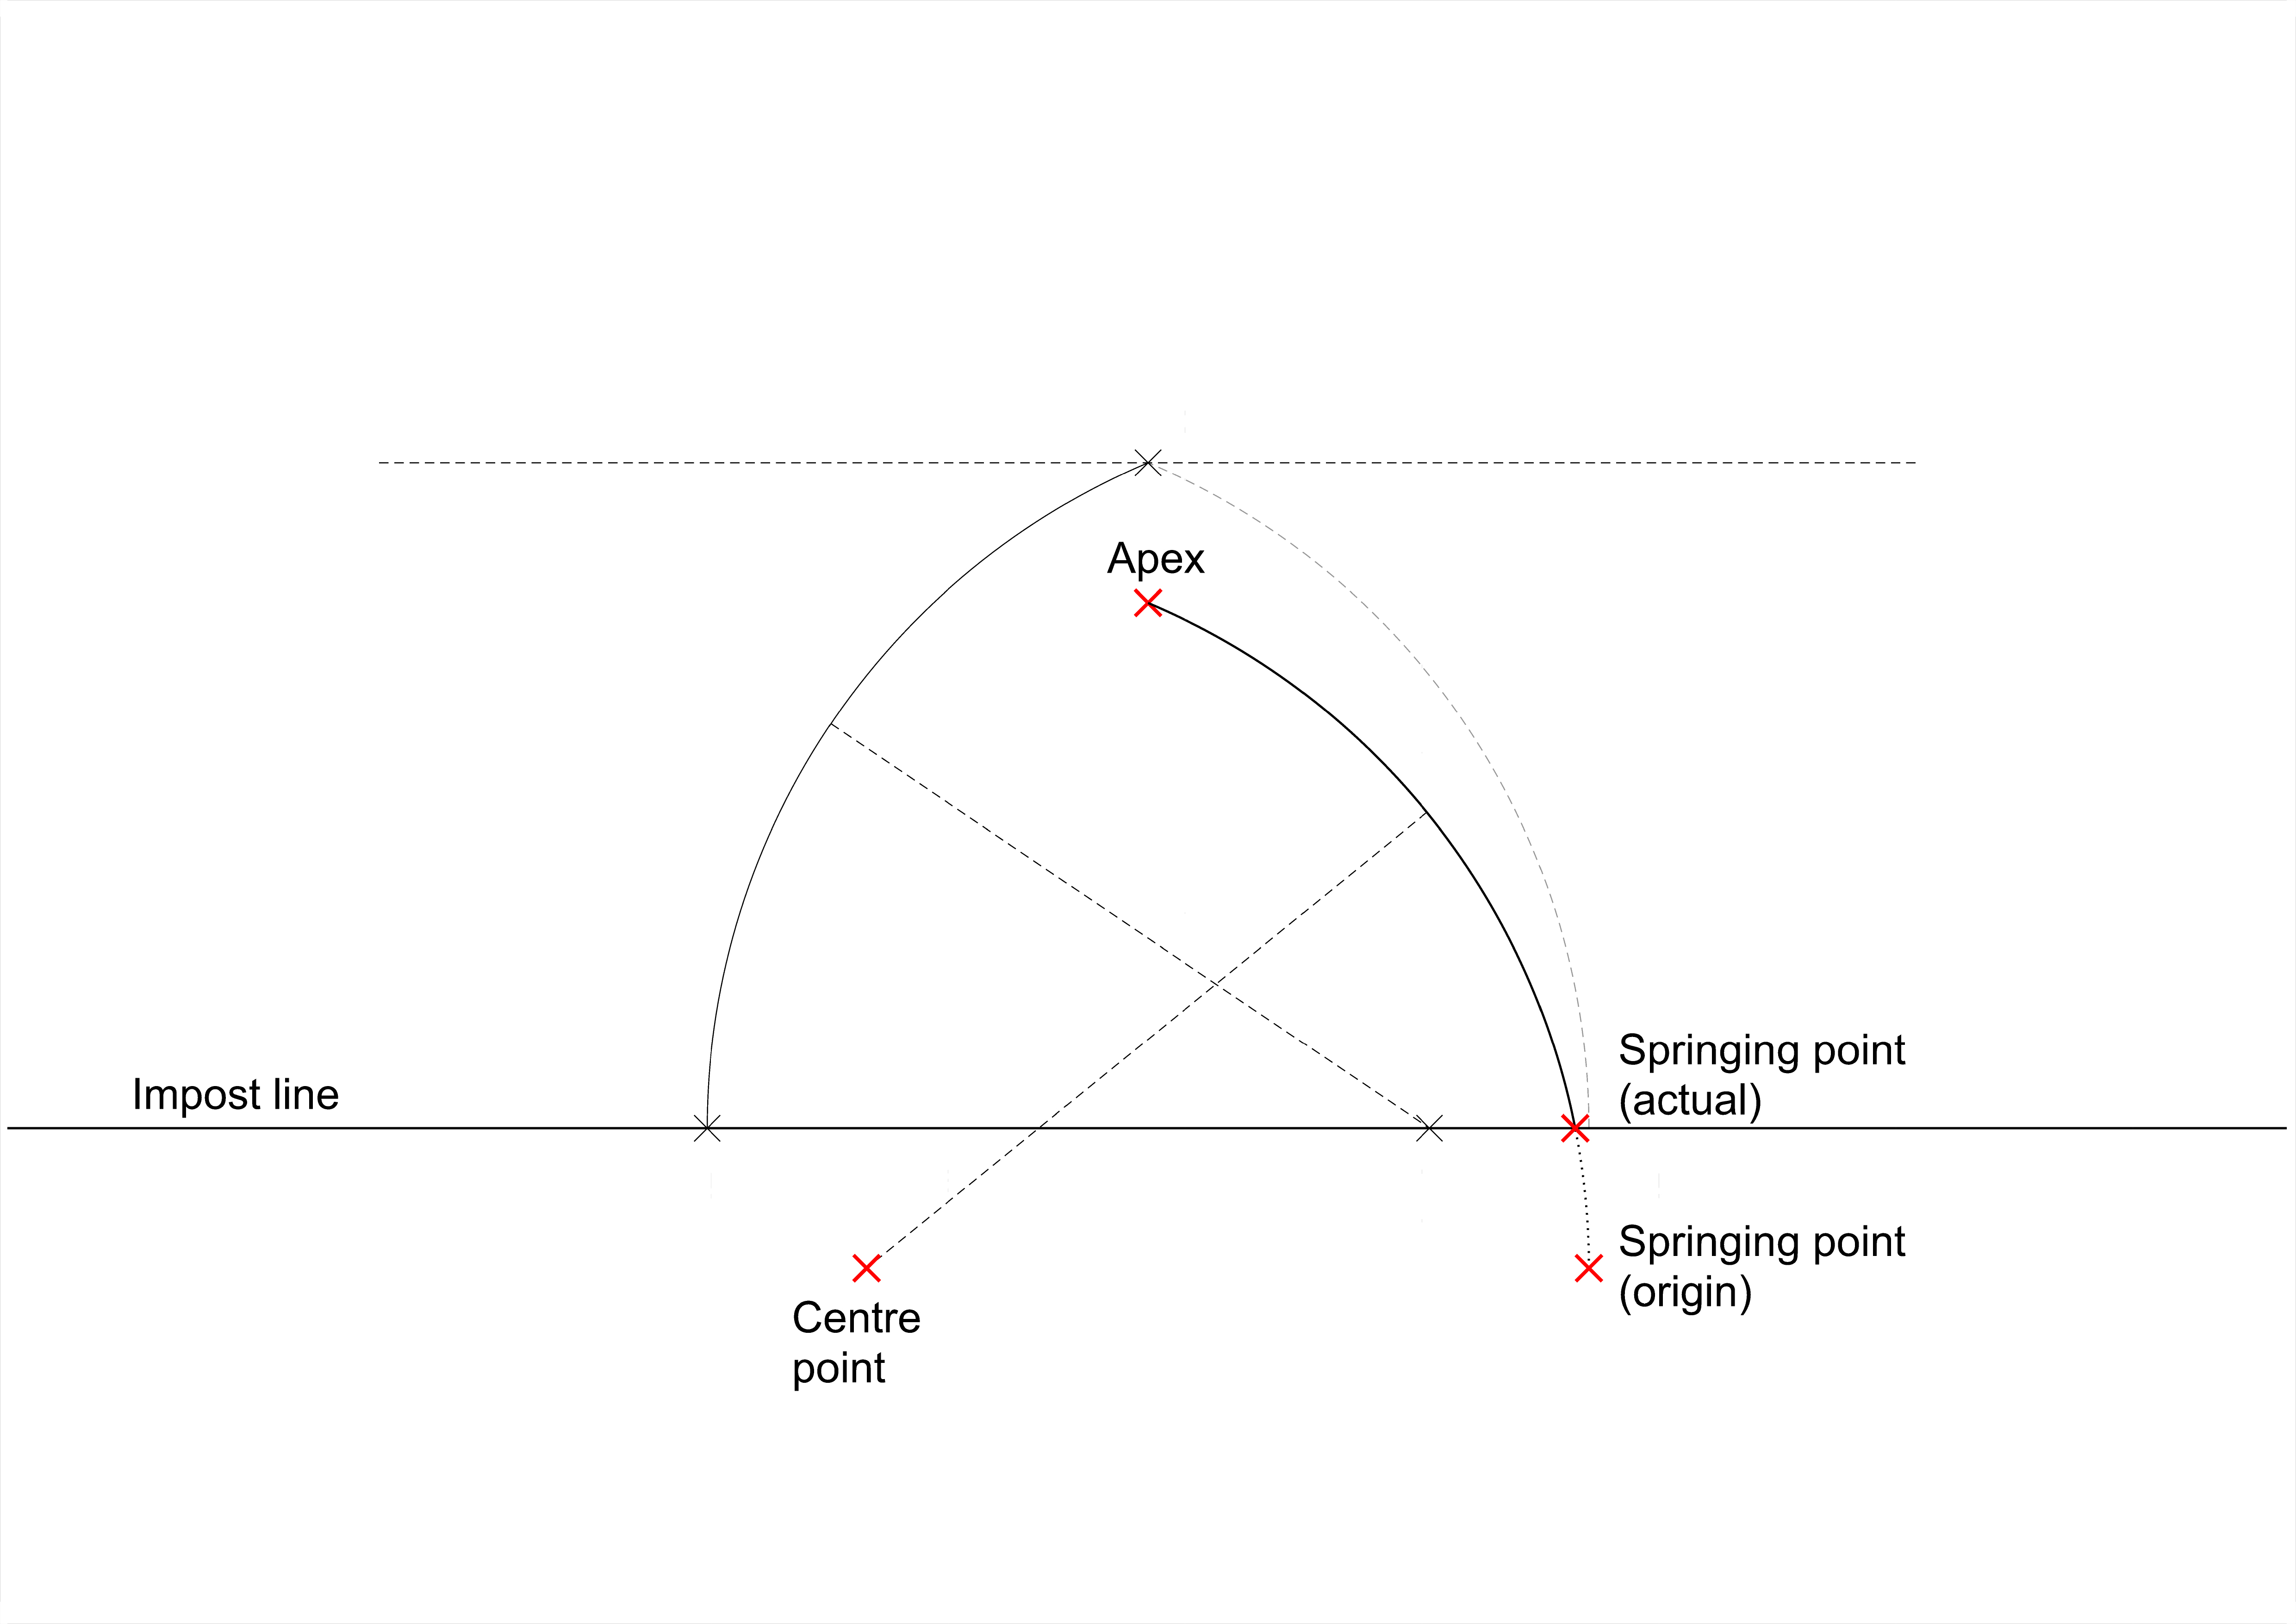 Left-hand arc as previous; right-hand arc showing effect of lowering the centre point